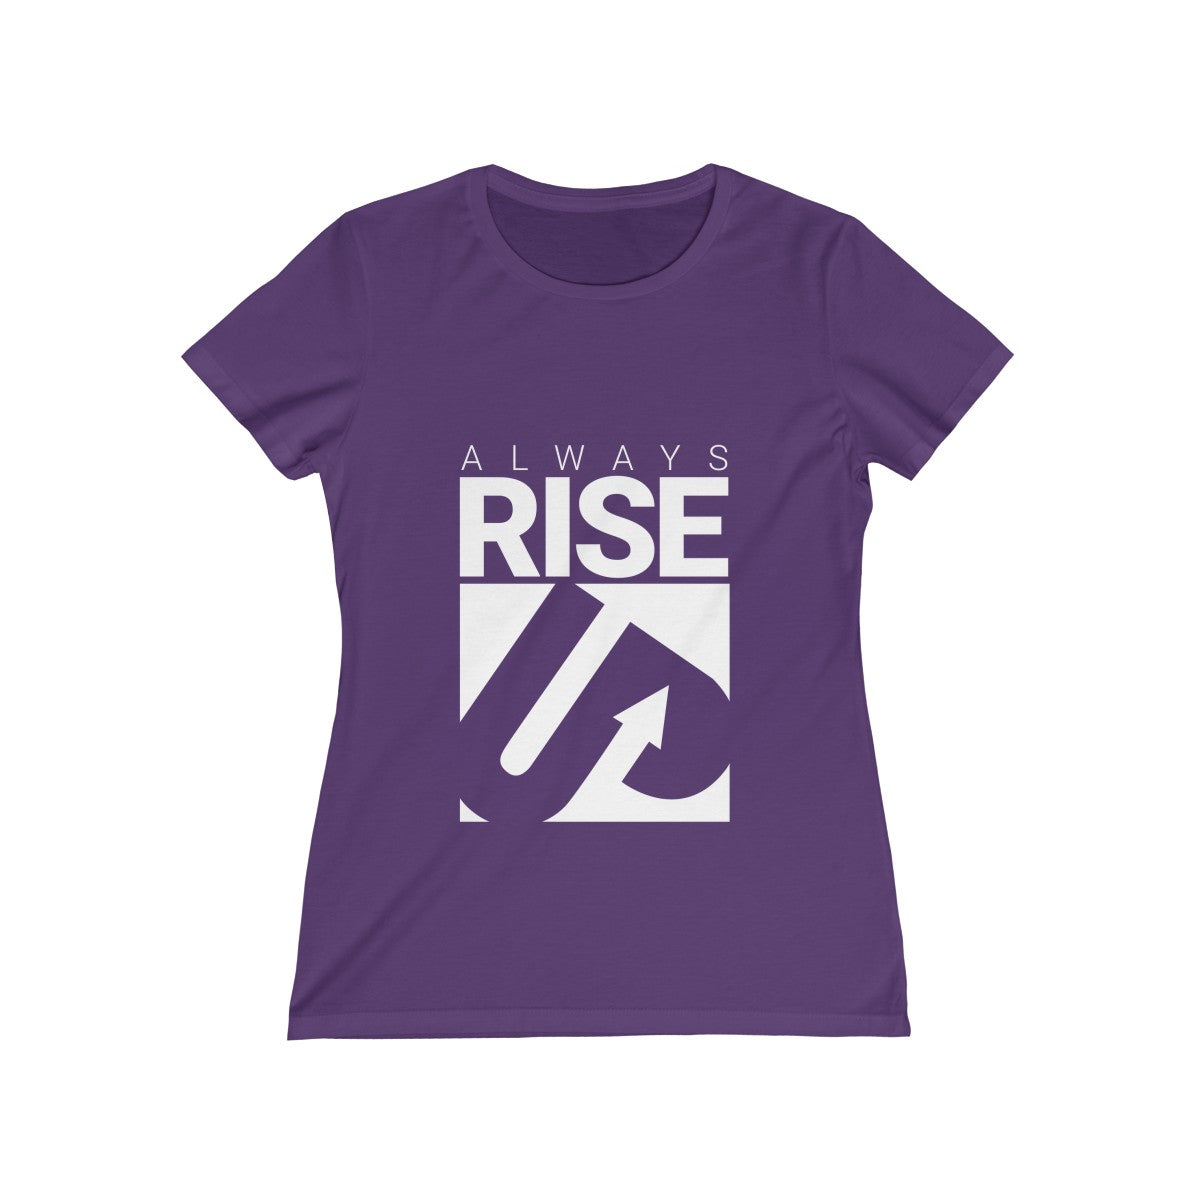 Always Rise Up Women's Missy Tee